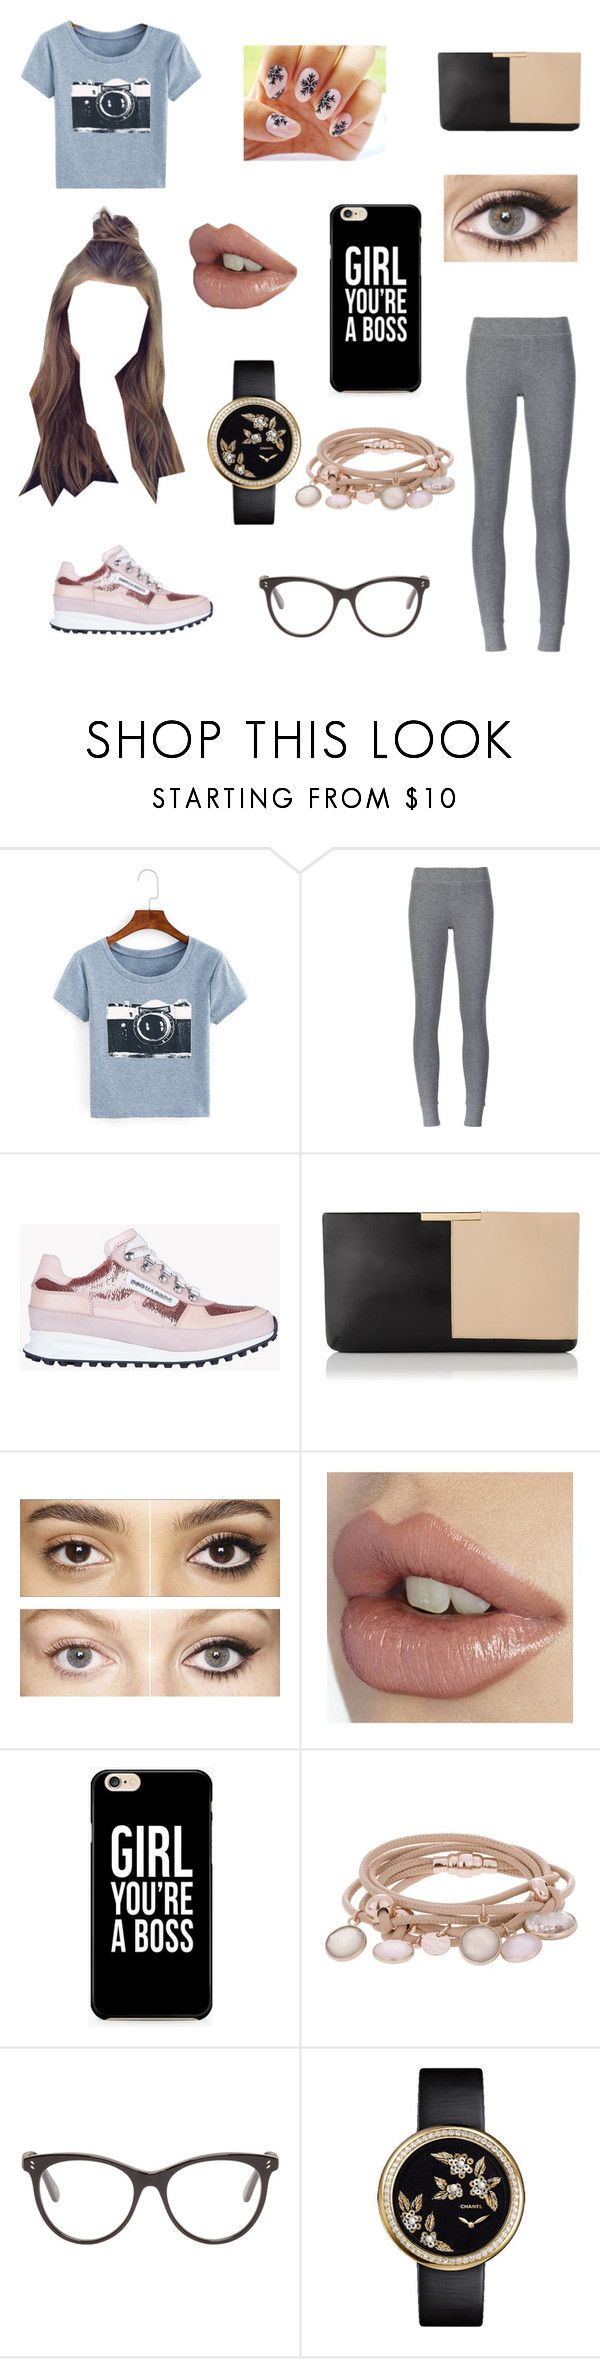 """""""Casual Day"""" by fandoms-and-good-music ❤ liked on Polyvore featuring ATM by Anthony Thomas Melillo, Dsquared2, L.K.Bennett, Charlotte Tilbury, Marjana von Berlepsch, STELLA McCARTNEY and Chanel"""